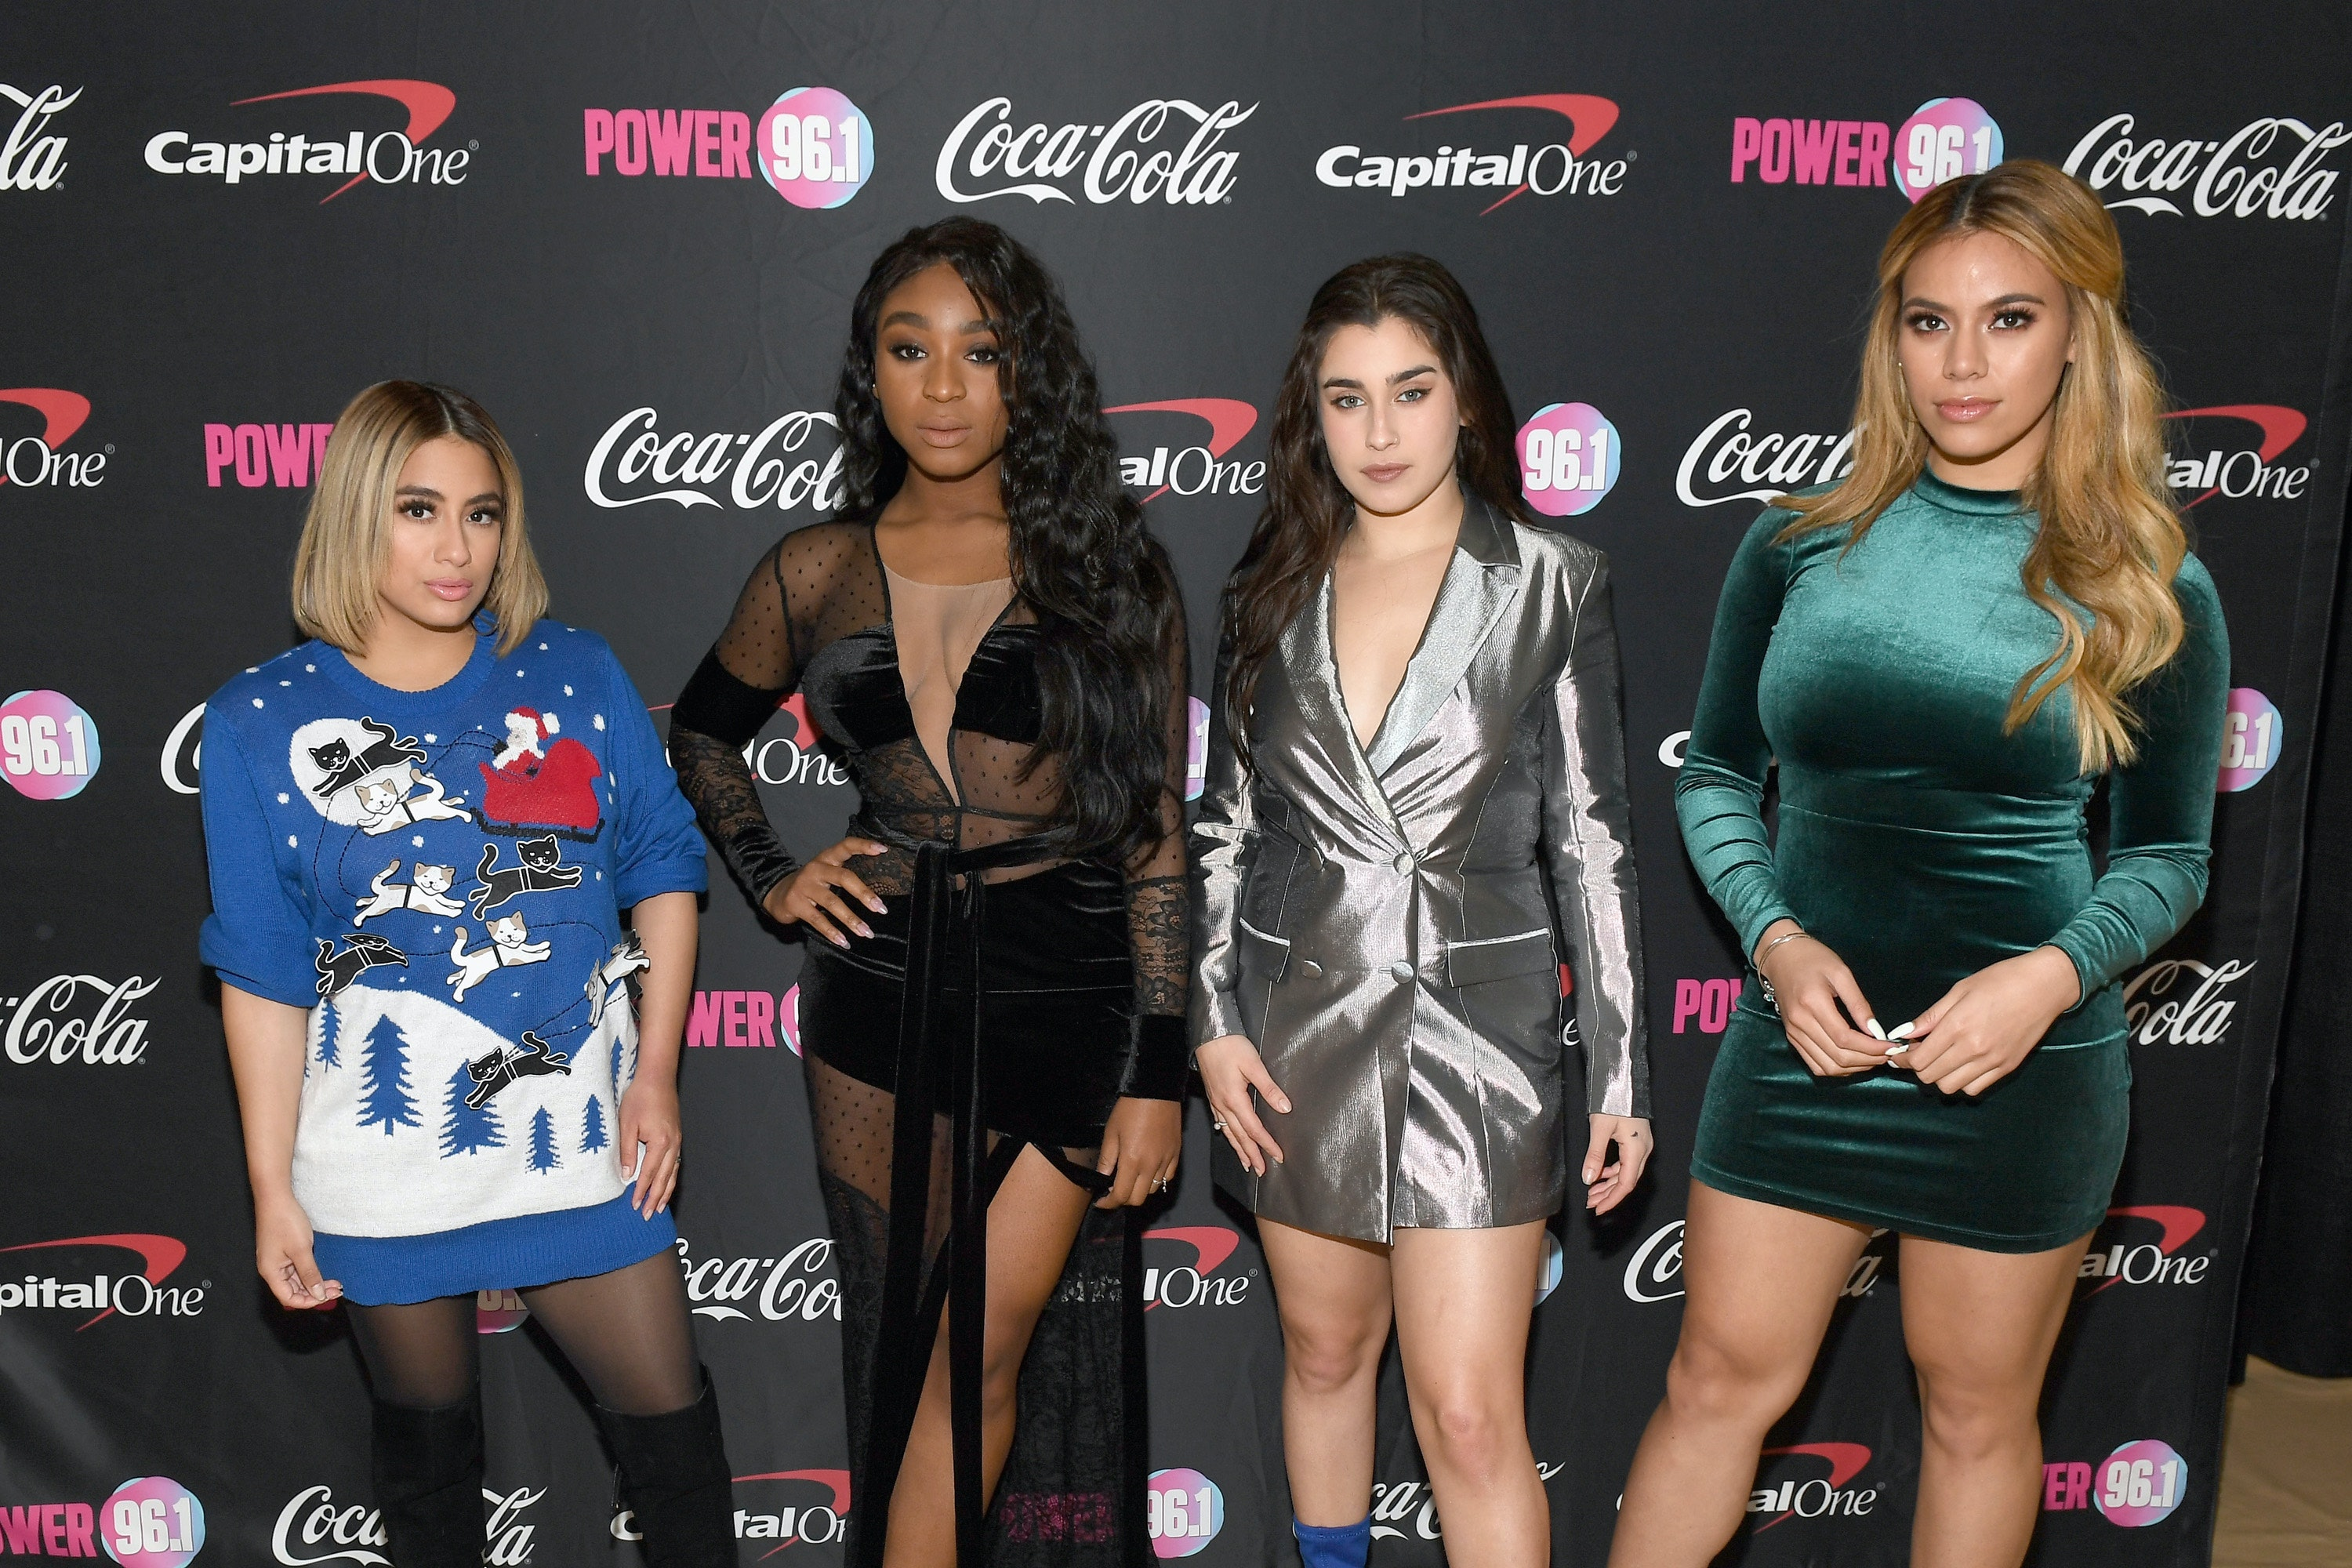 Fifth Harmony All I Want For Christmas Is You.How Long Is Fifth Harmony S Hiatus The Group Made A Major